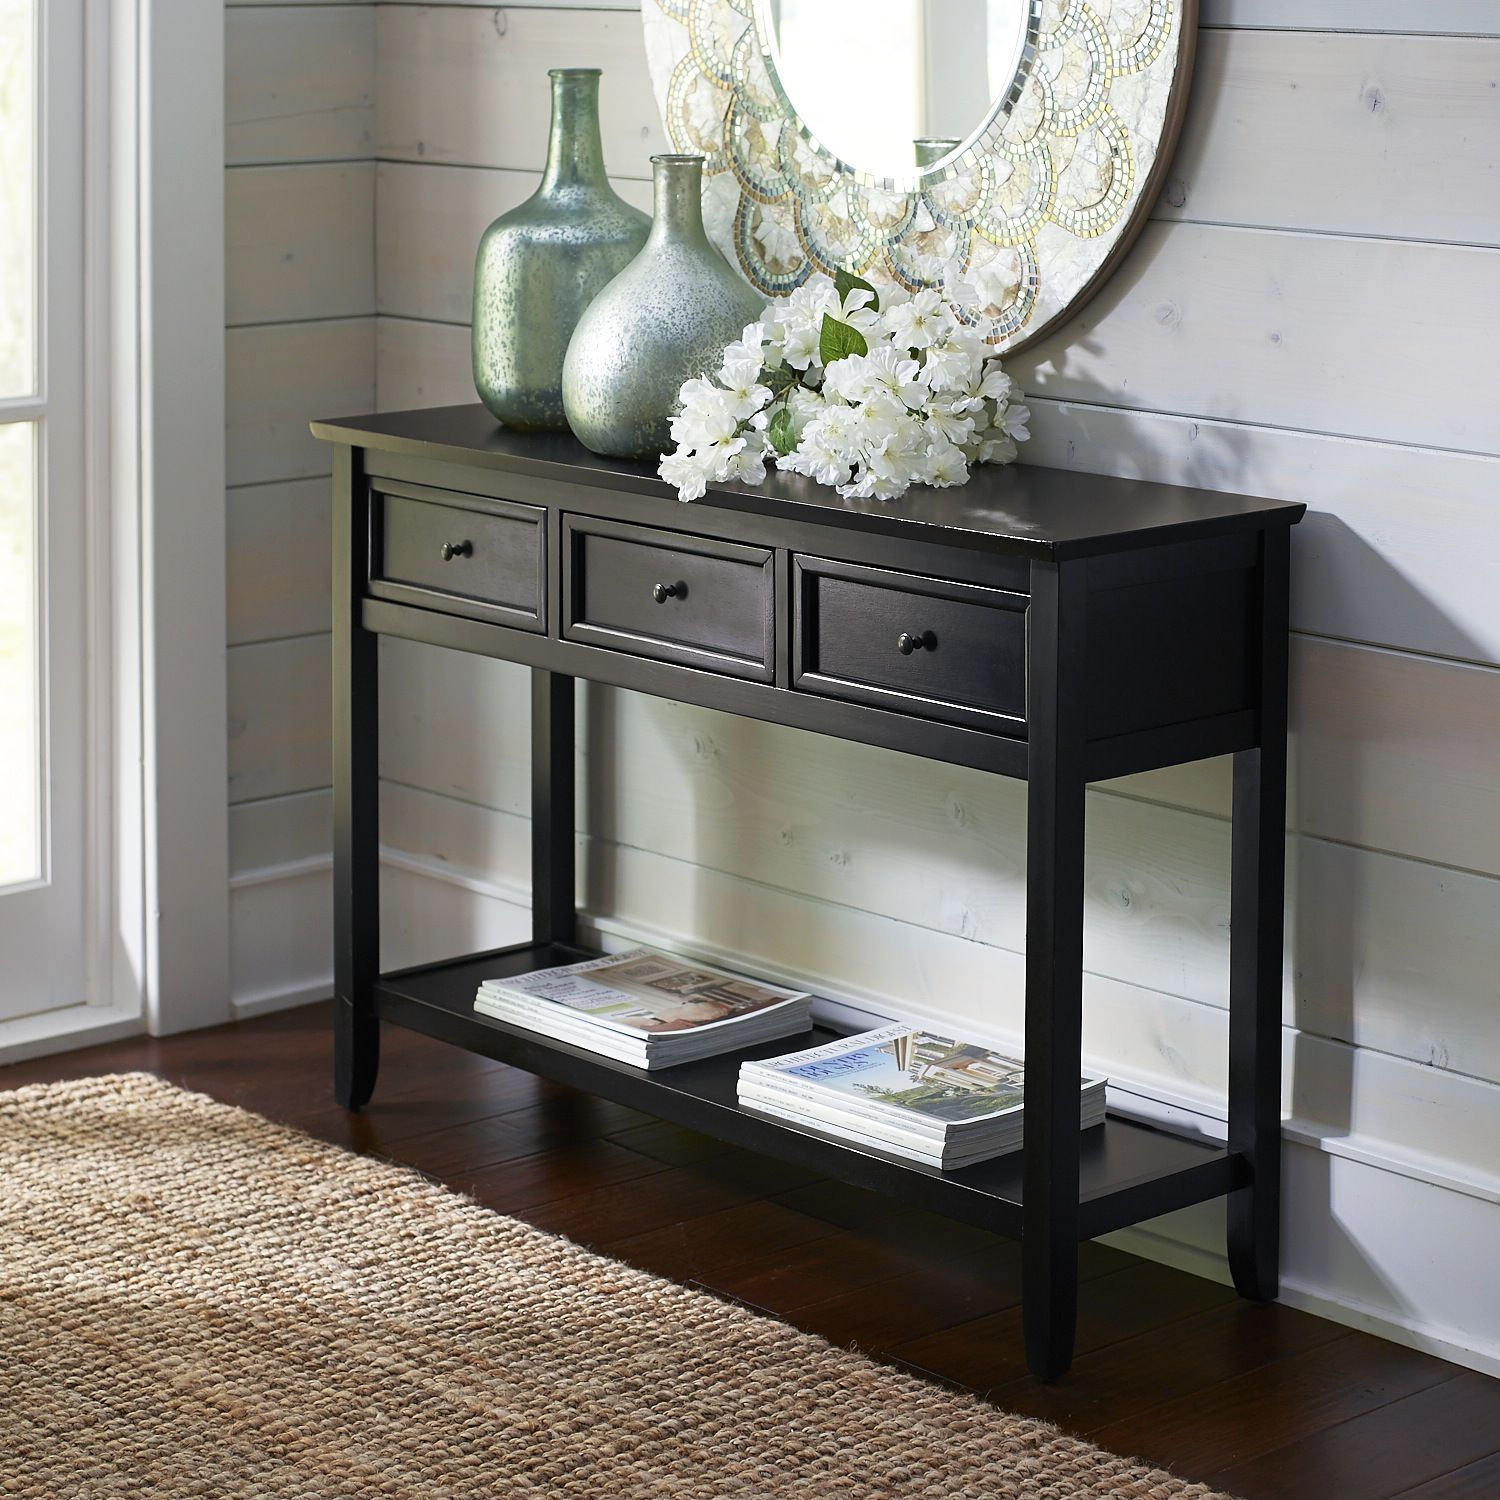 Ashington Console Table - Rubbed Black | Pier 1 Imports | For the ...